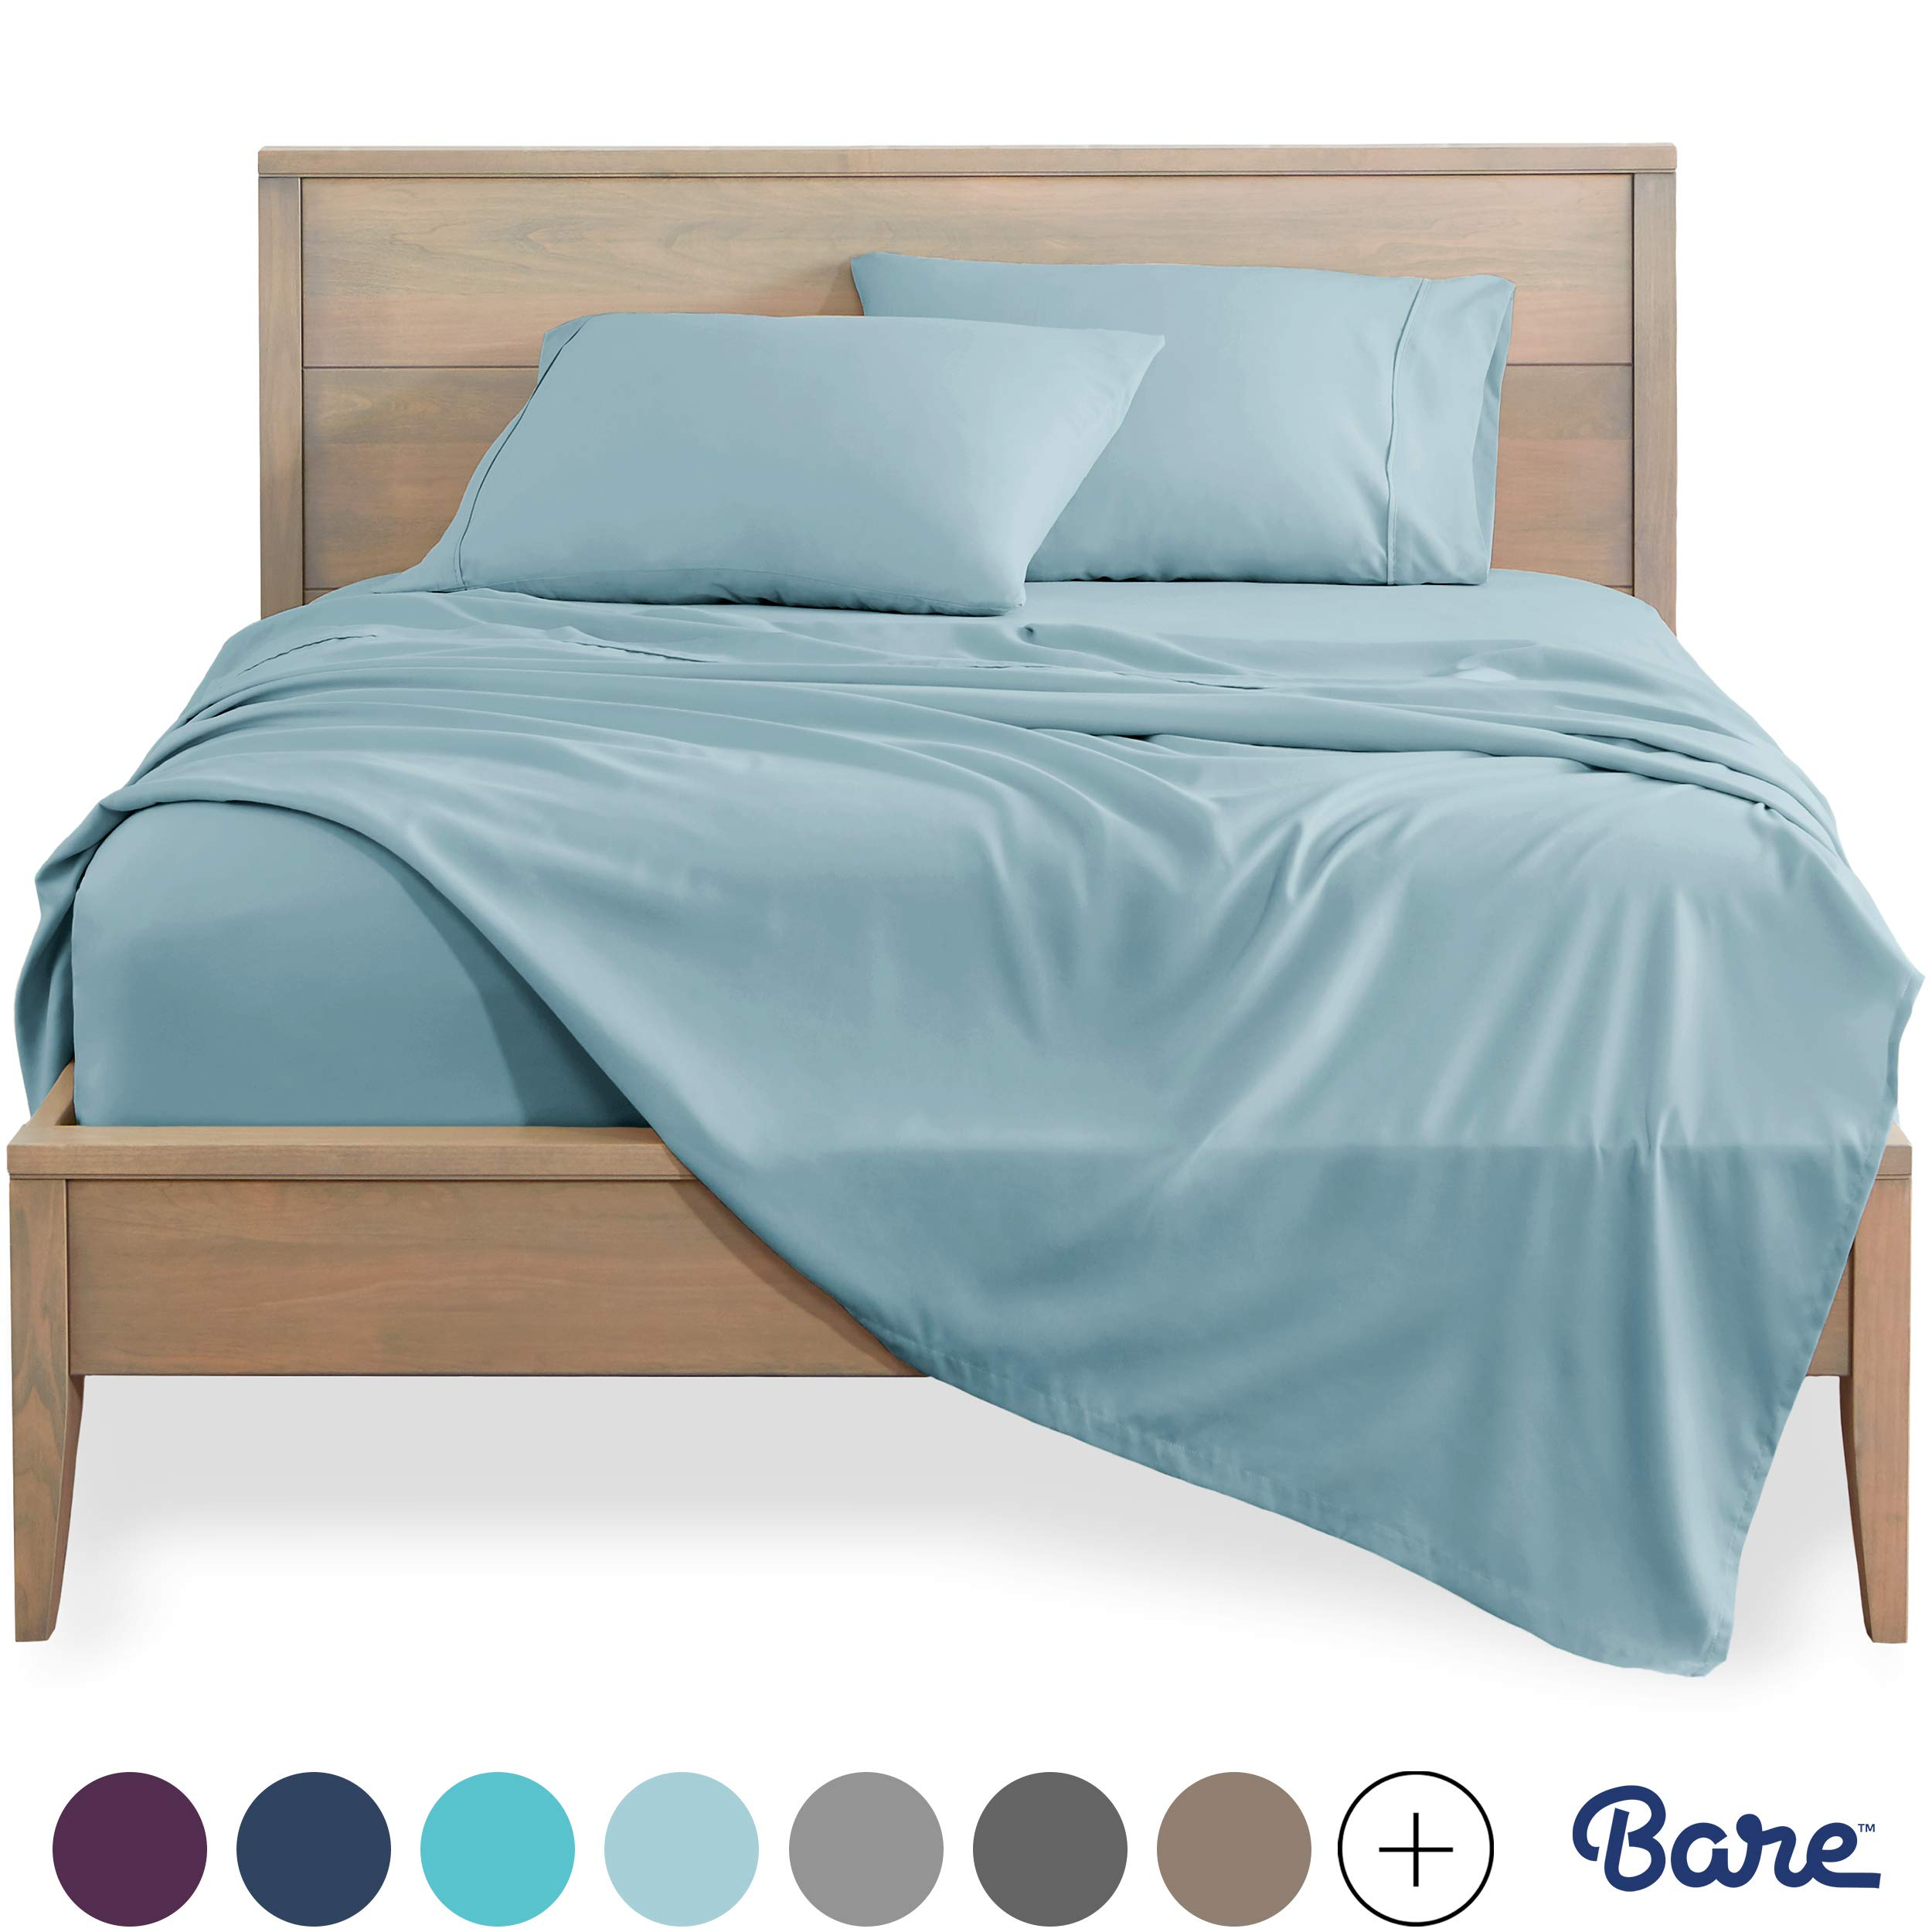 Bare Home California King Sheet Set 1800 Ultra Soft Microfiber Bed Sheets Double Brushed Breathable Bedding Hypoallergenic Wrinkle Resistant Deep Pocket Cal King Light Blue